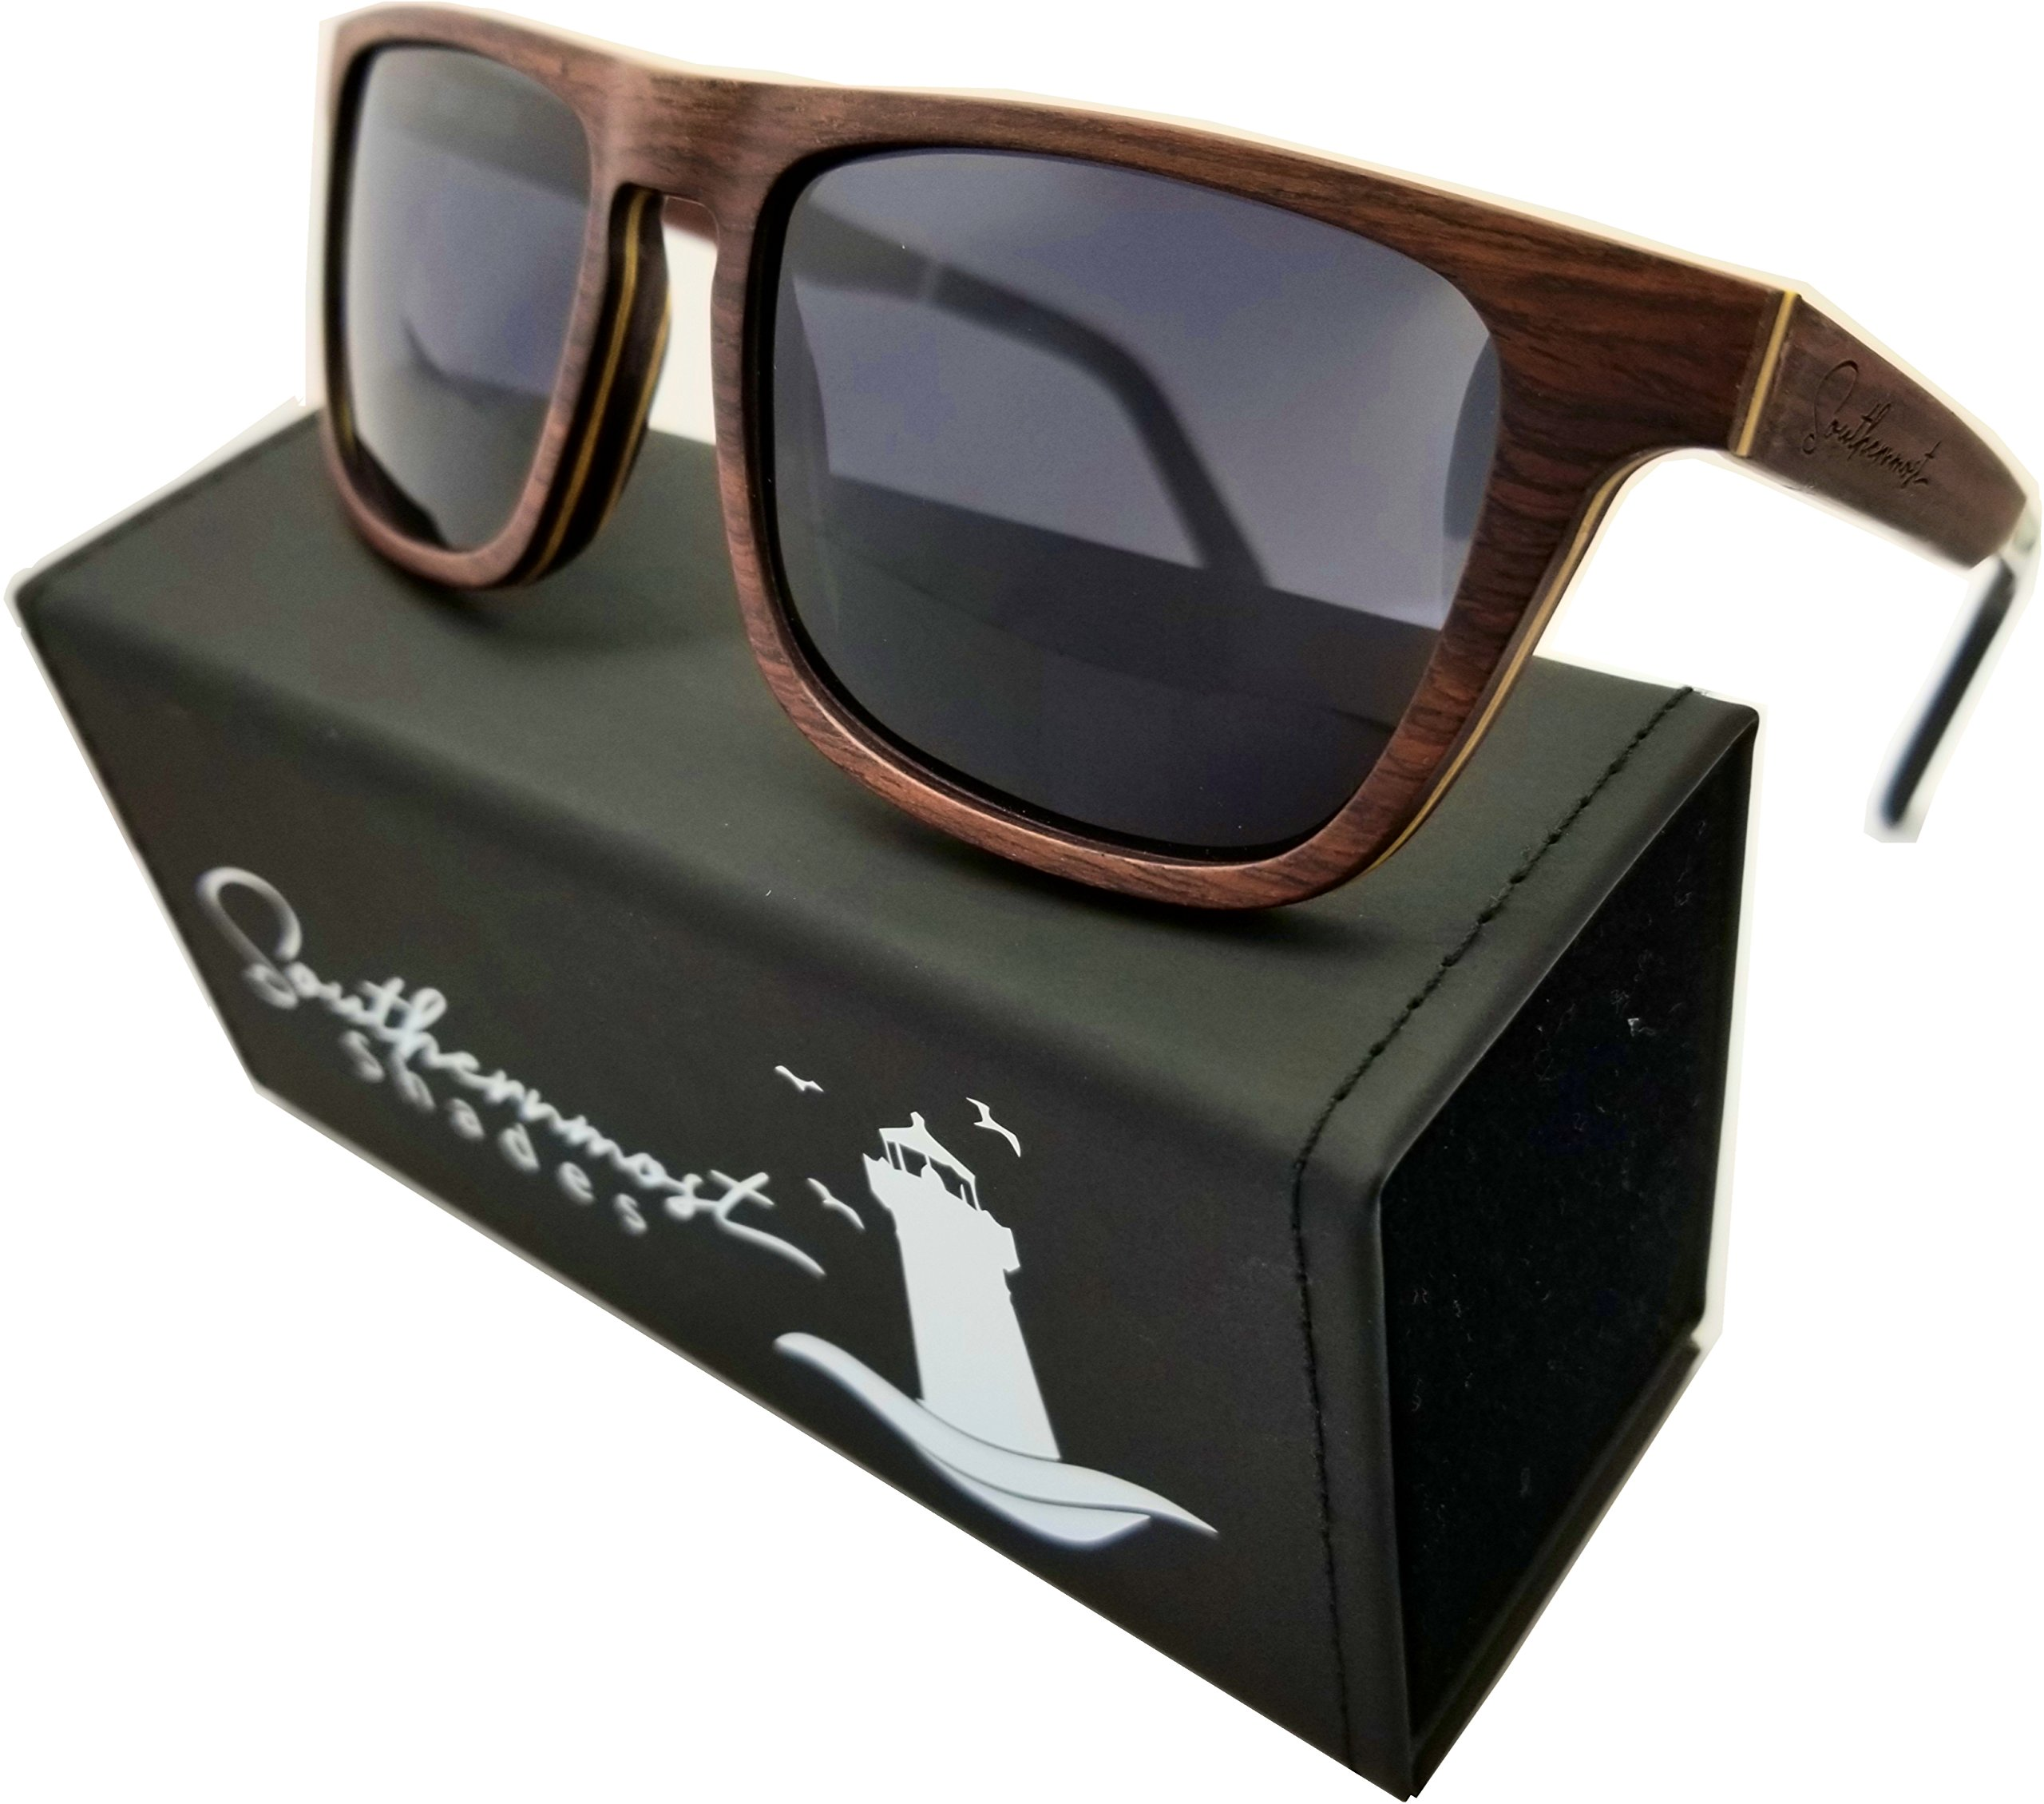 Natural Wood Sunglasses for Men - Wooden Frame - Genuine Polarized Lenses (Sandalwood - Dark Lenses)